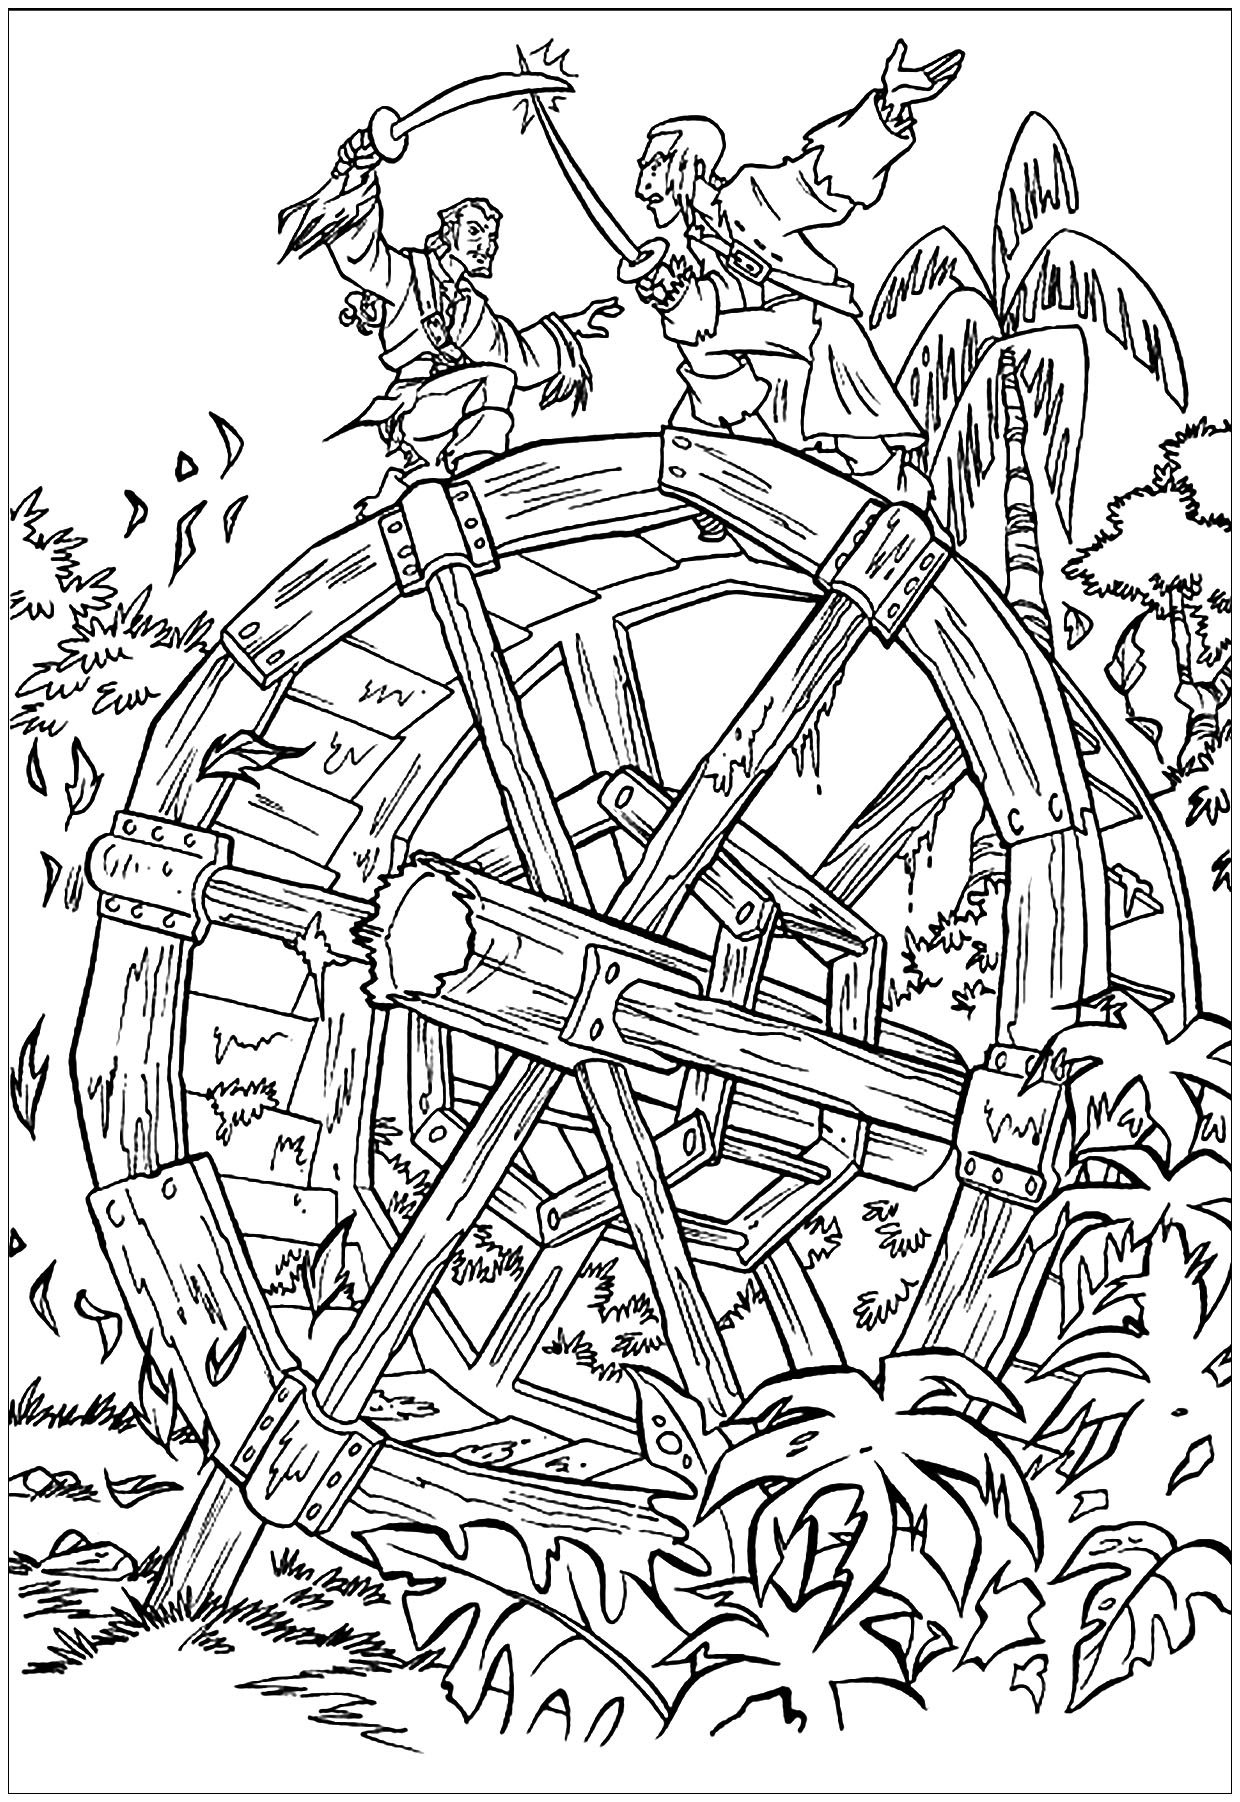 pirate coloring pages coloring page pirate in a battle pirate pages coloring